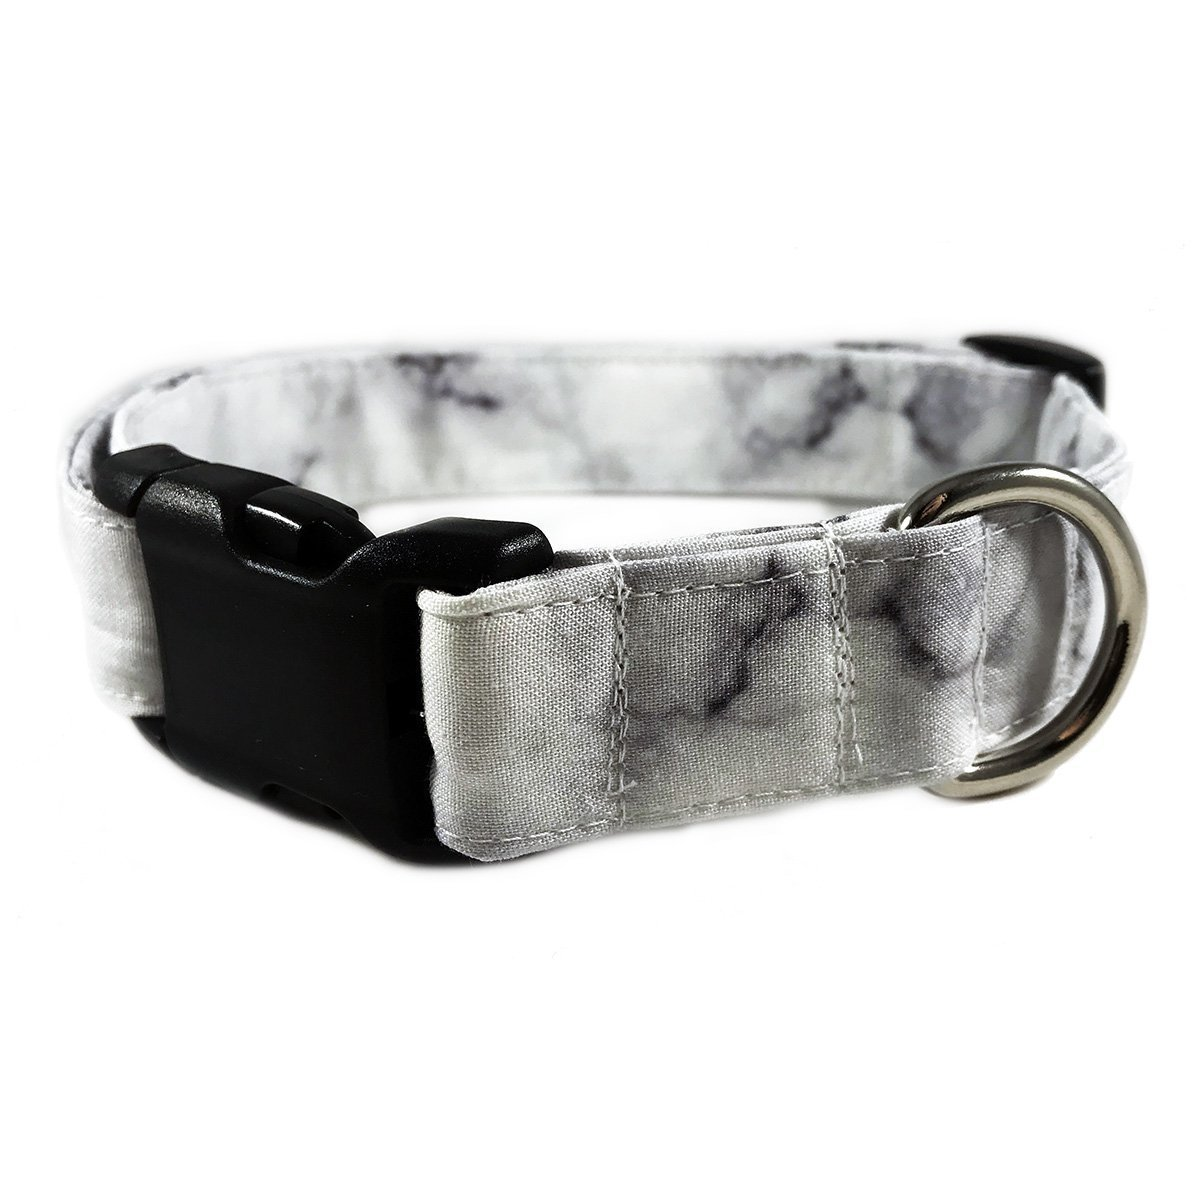 White Marble Dog or Cat Collar for Pets Size Medium 3/4'' Wide and 13-17'' Long by Oh My Paw'd by Oh My Paw'd